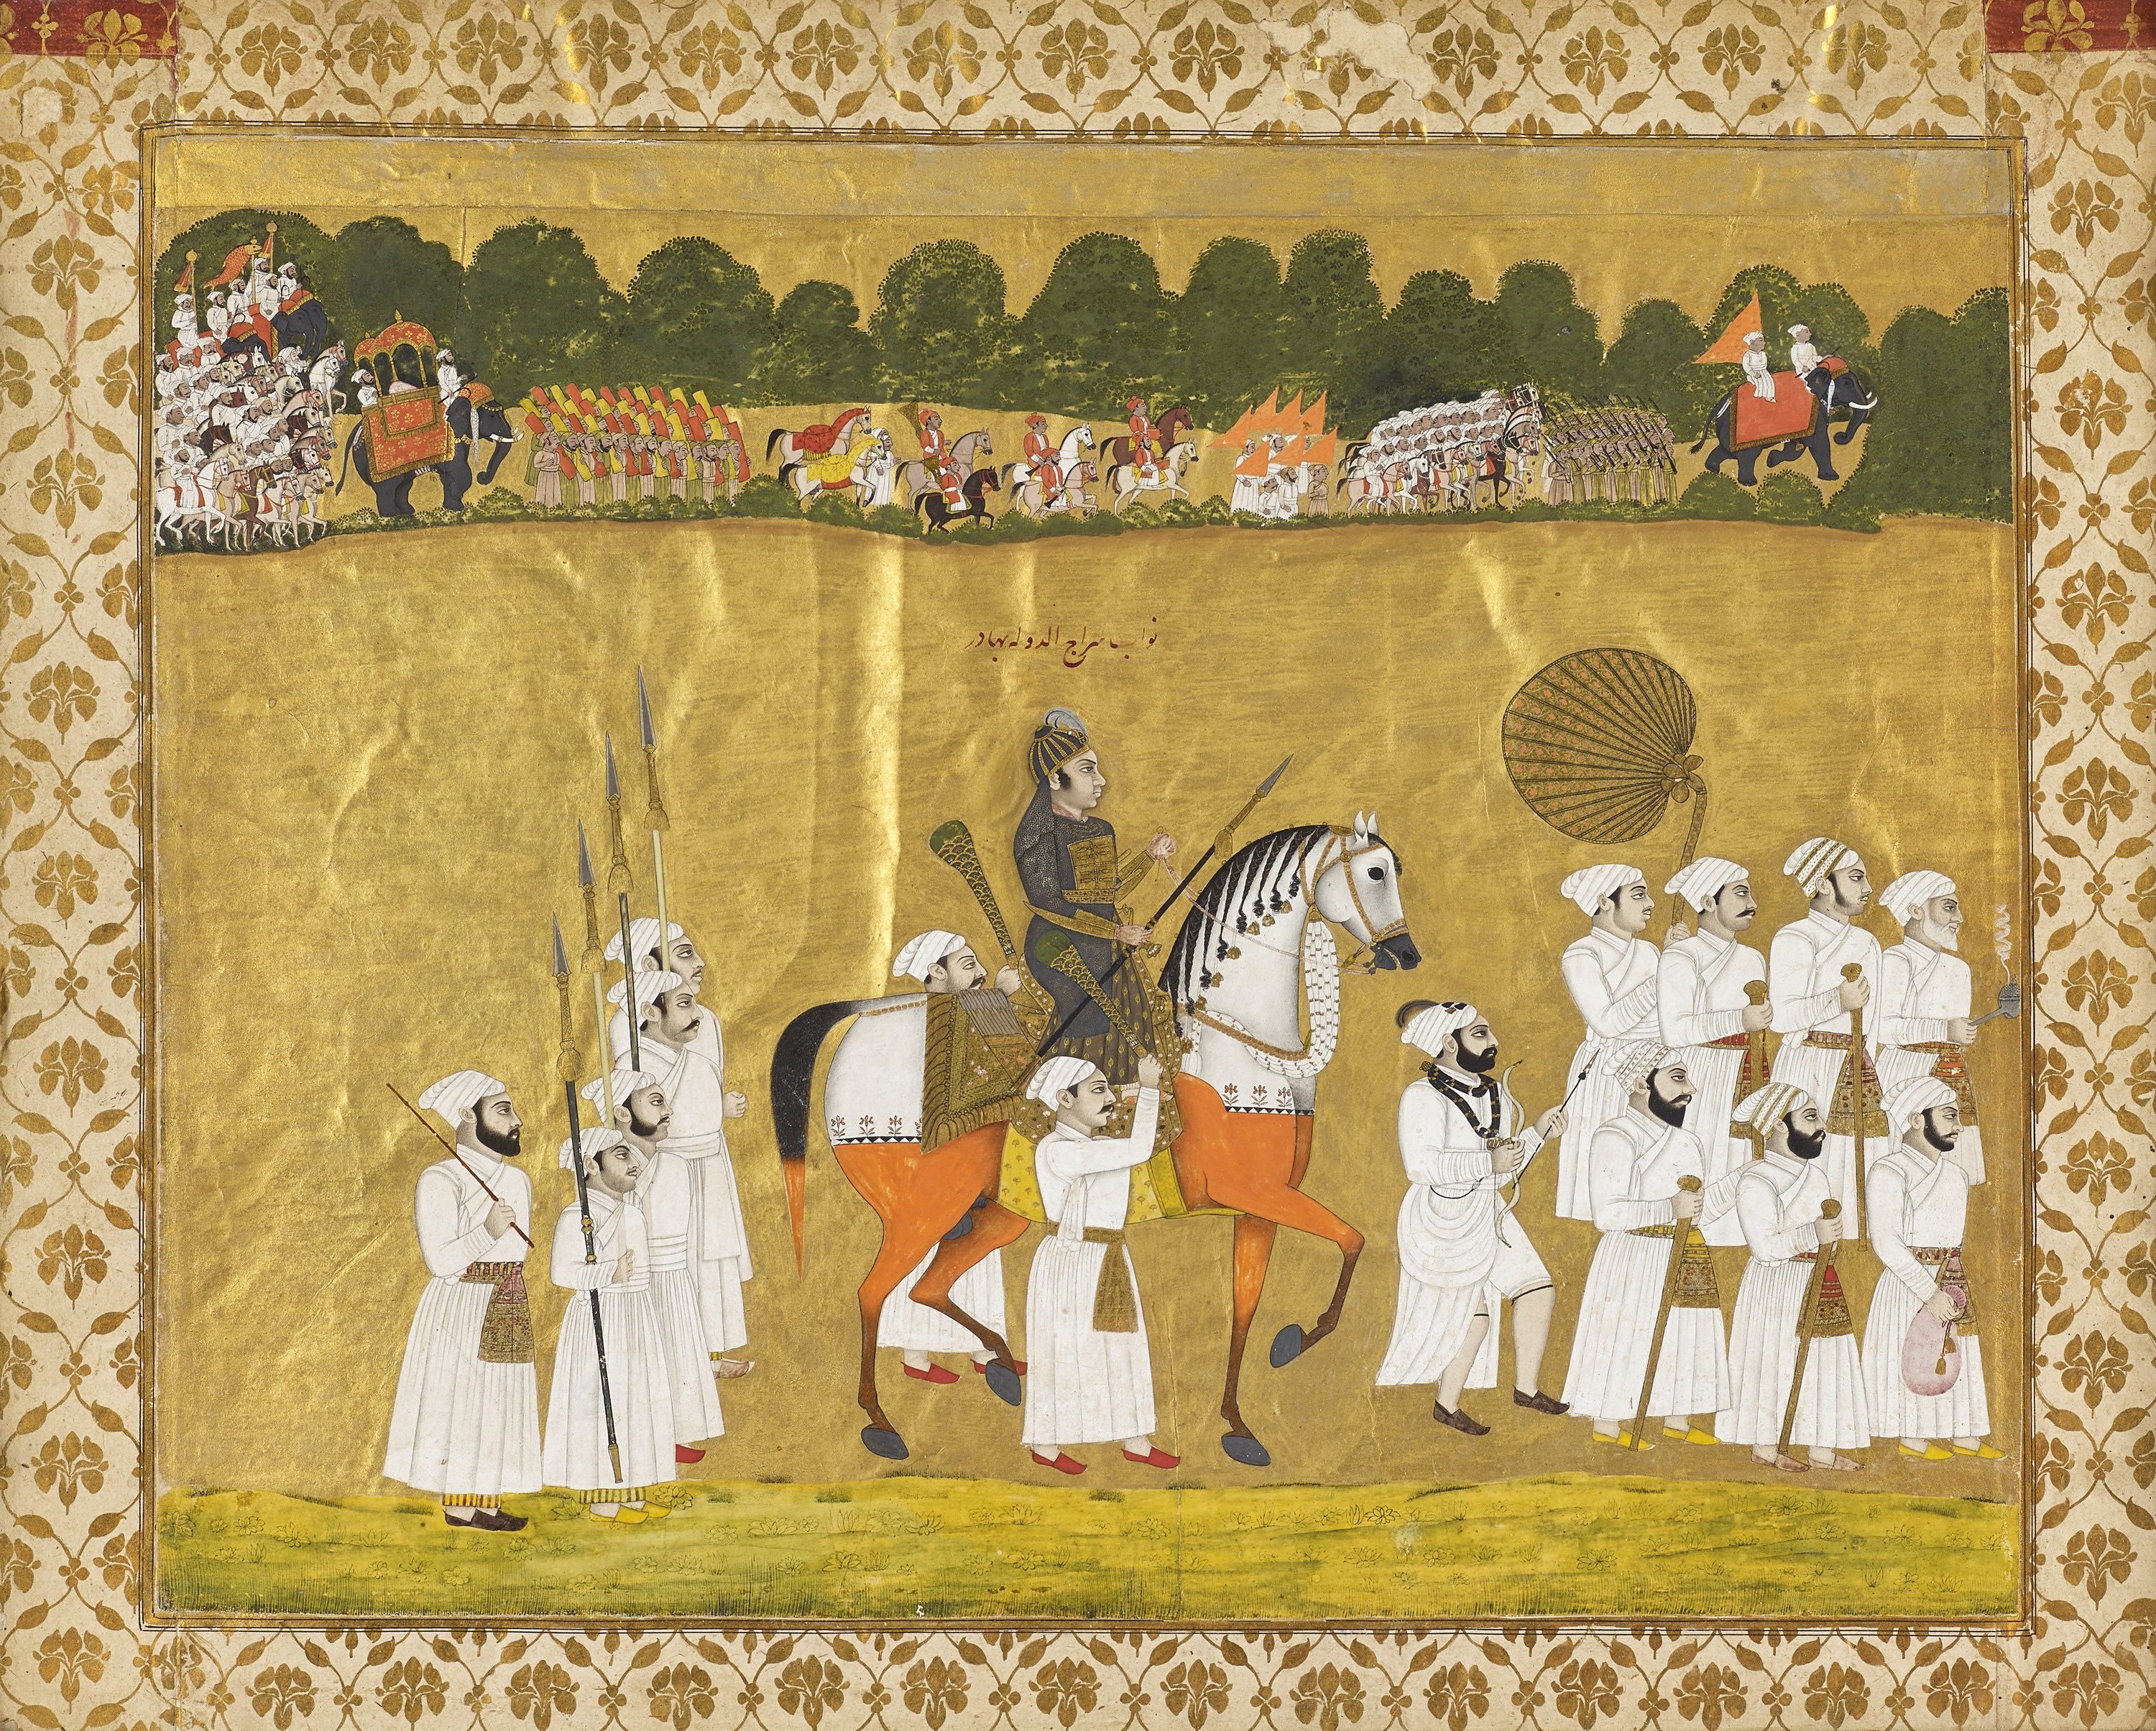 Miniature painting: Nawab Siraj al-Daula on horseback in a private procession with the state retinue depicted in the background, by a Murshidabad artist, circa 1756-57.  Photography by John McKenzie for Lyon & Turnbull Fine Art Valuers.